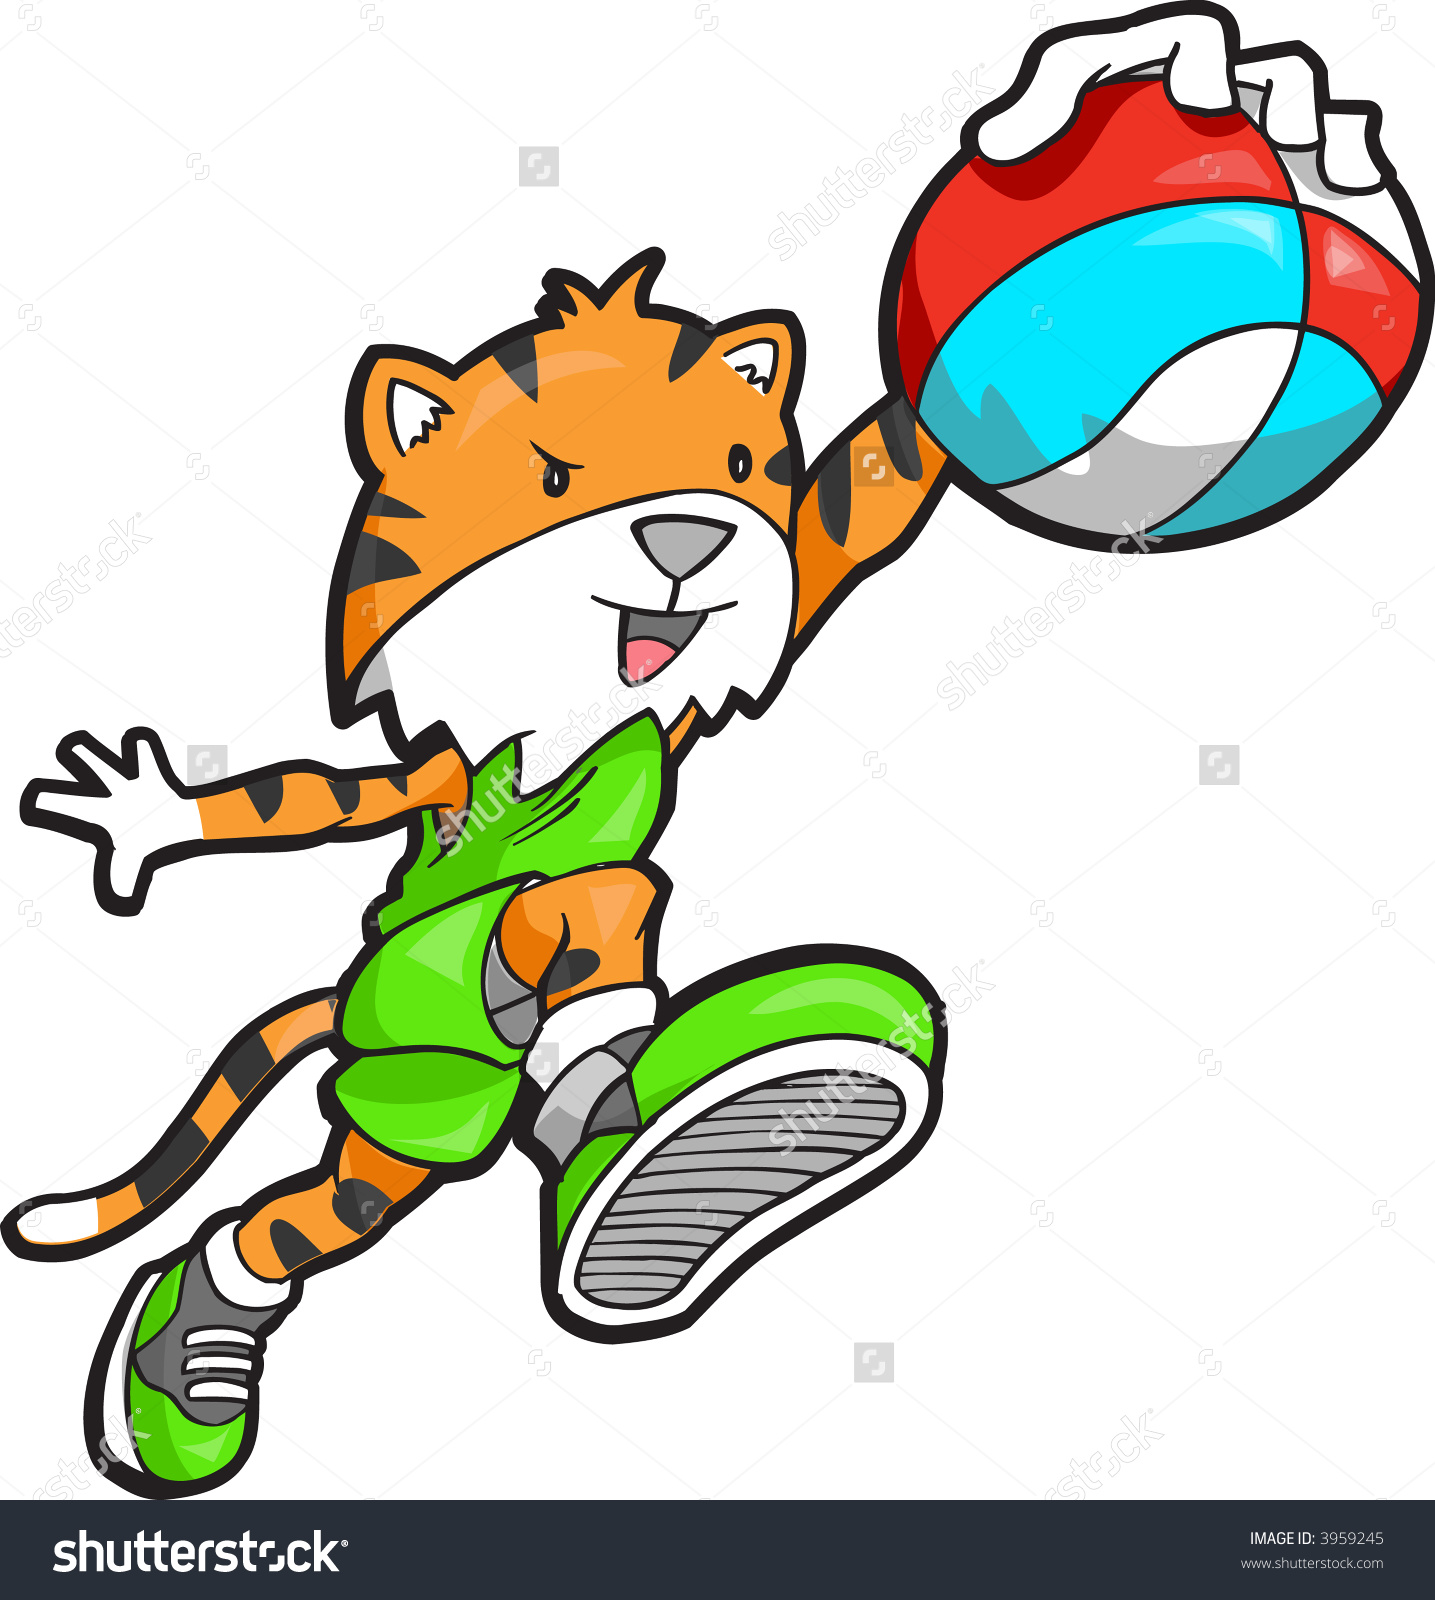 Tiger Basketball Player Vector Illustration.